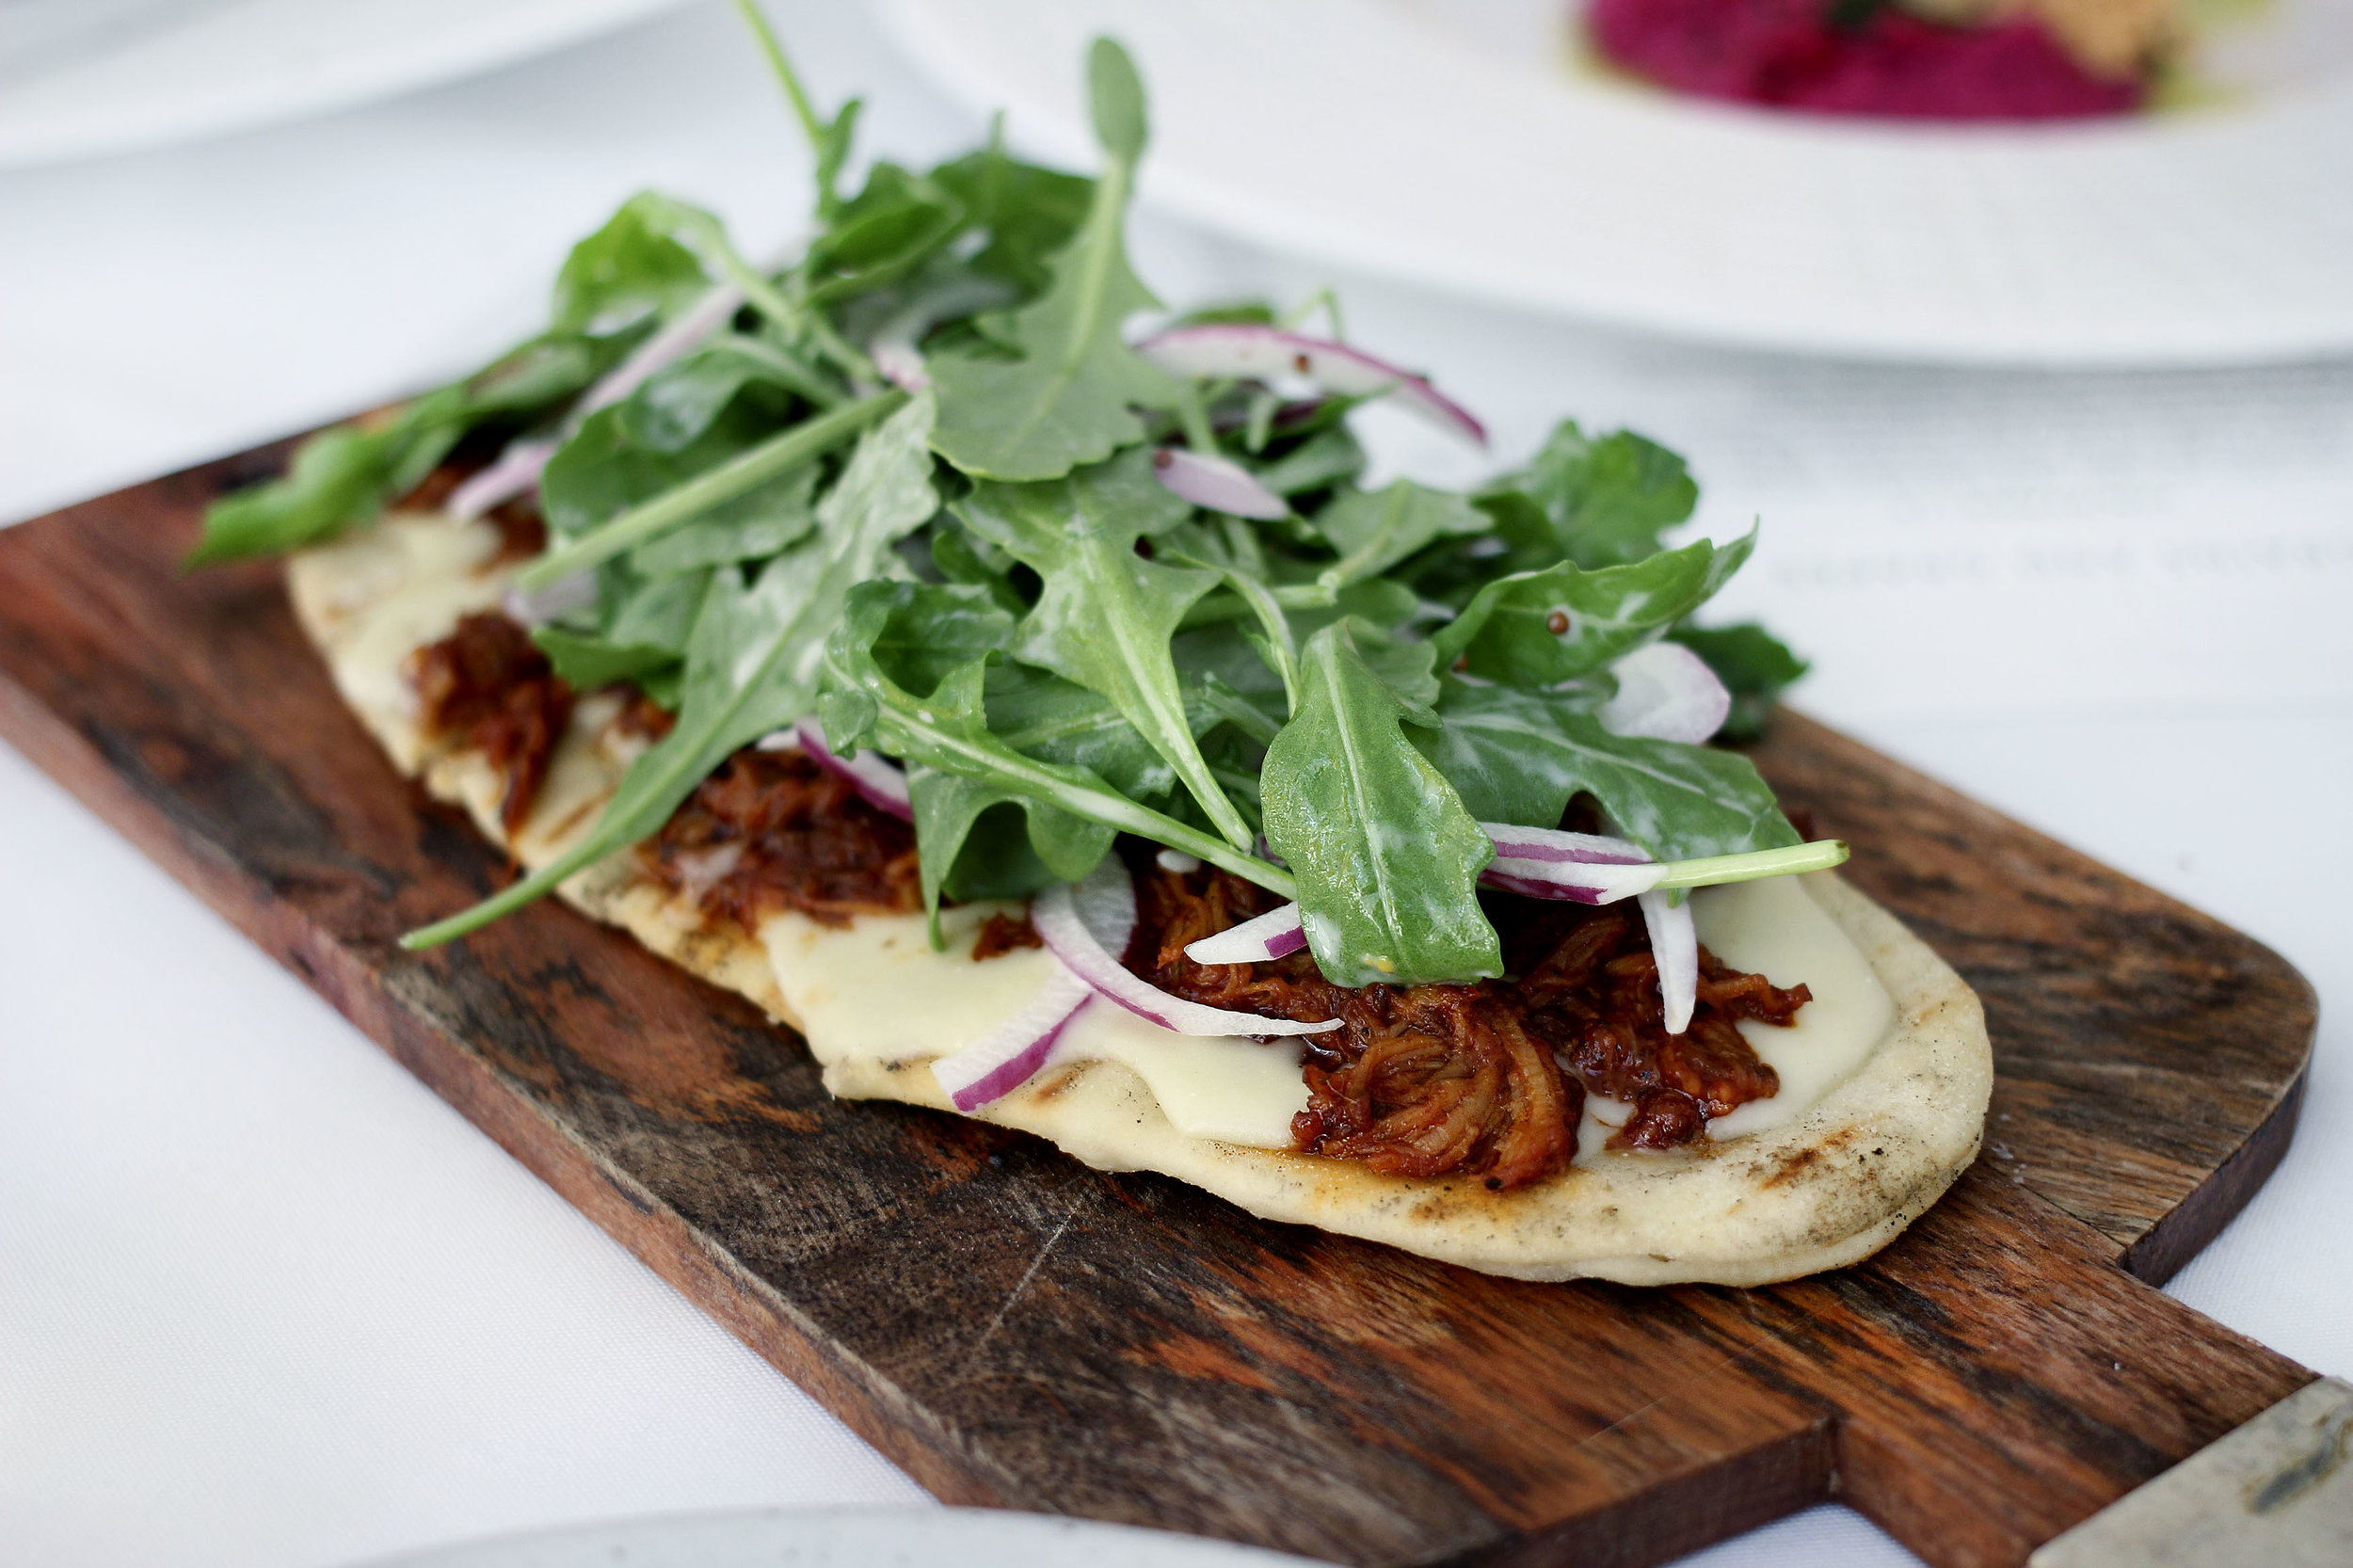 BBQ Flat Bread - Grilled Flatbread, smoky barbeque pulled pork, white cheddar, arugula and red onions.